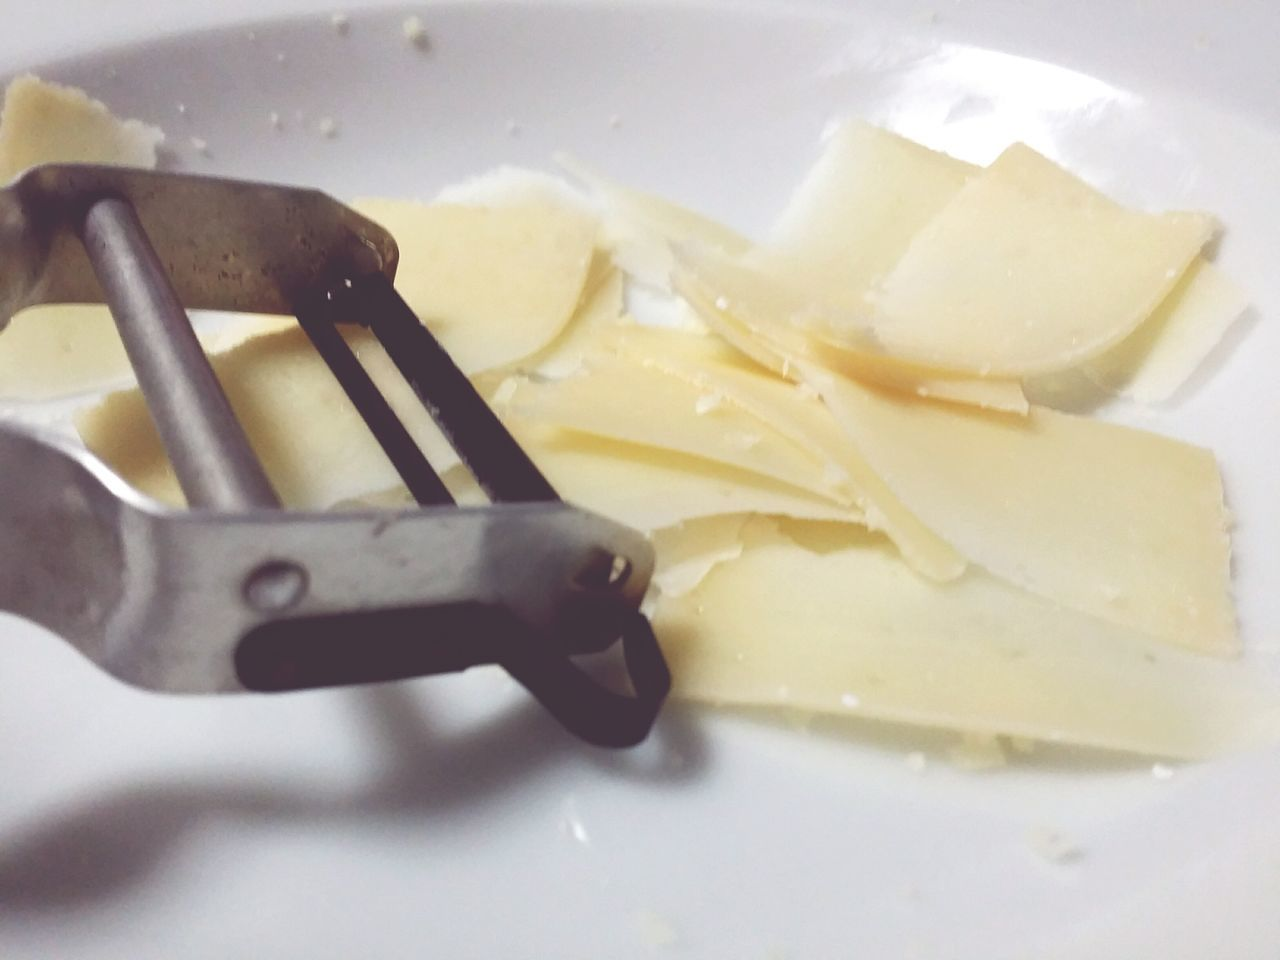 Peeler And Cheese Slices On Plate